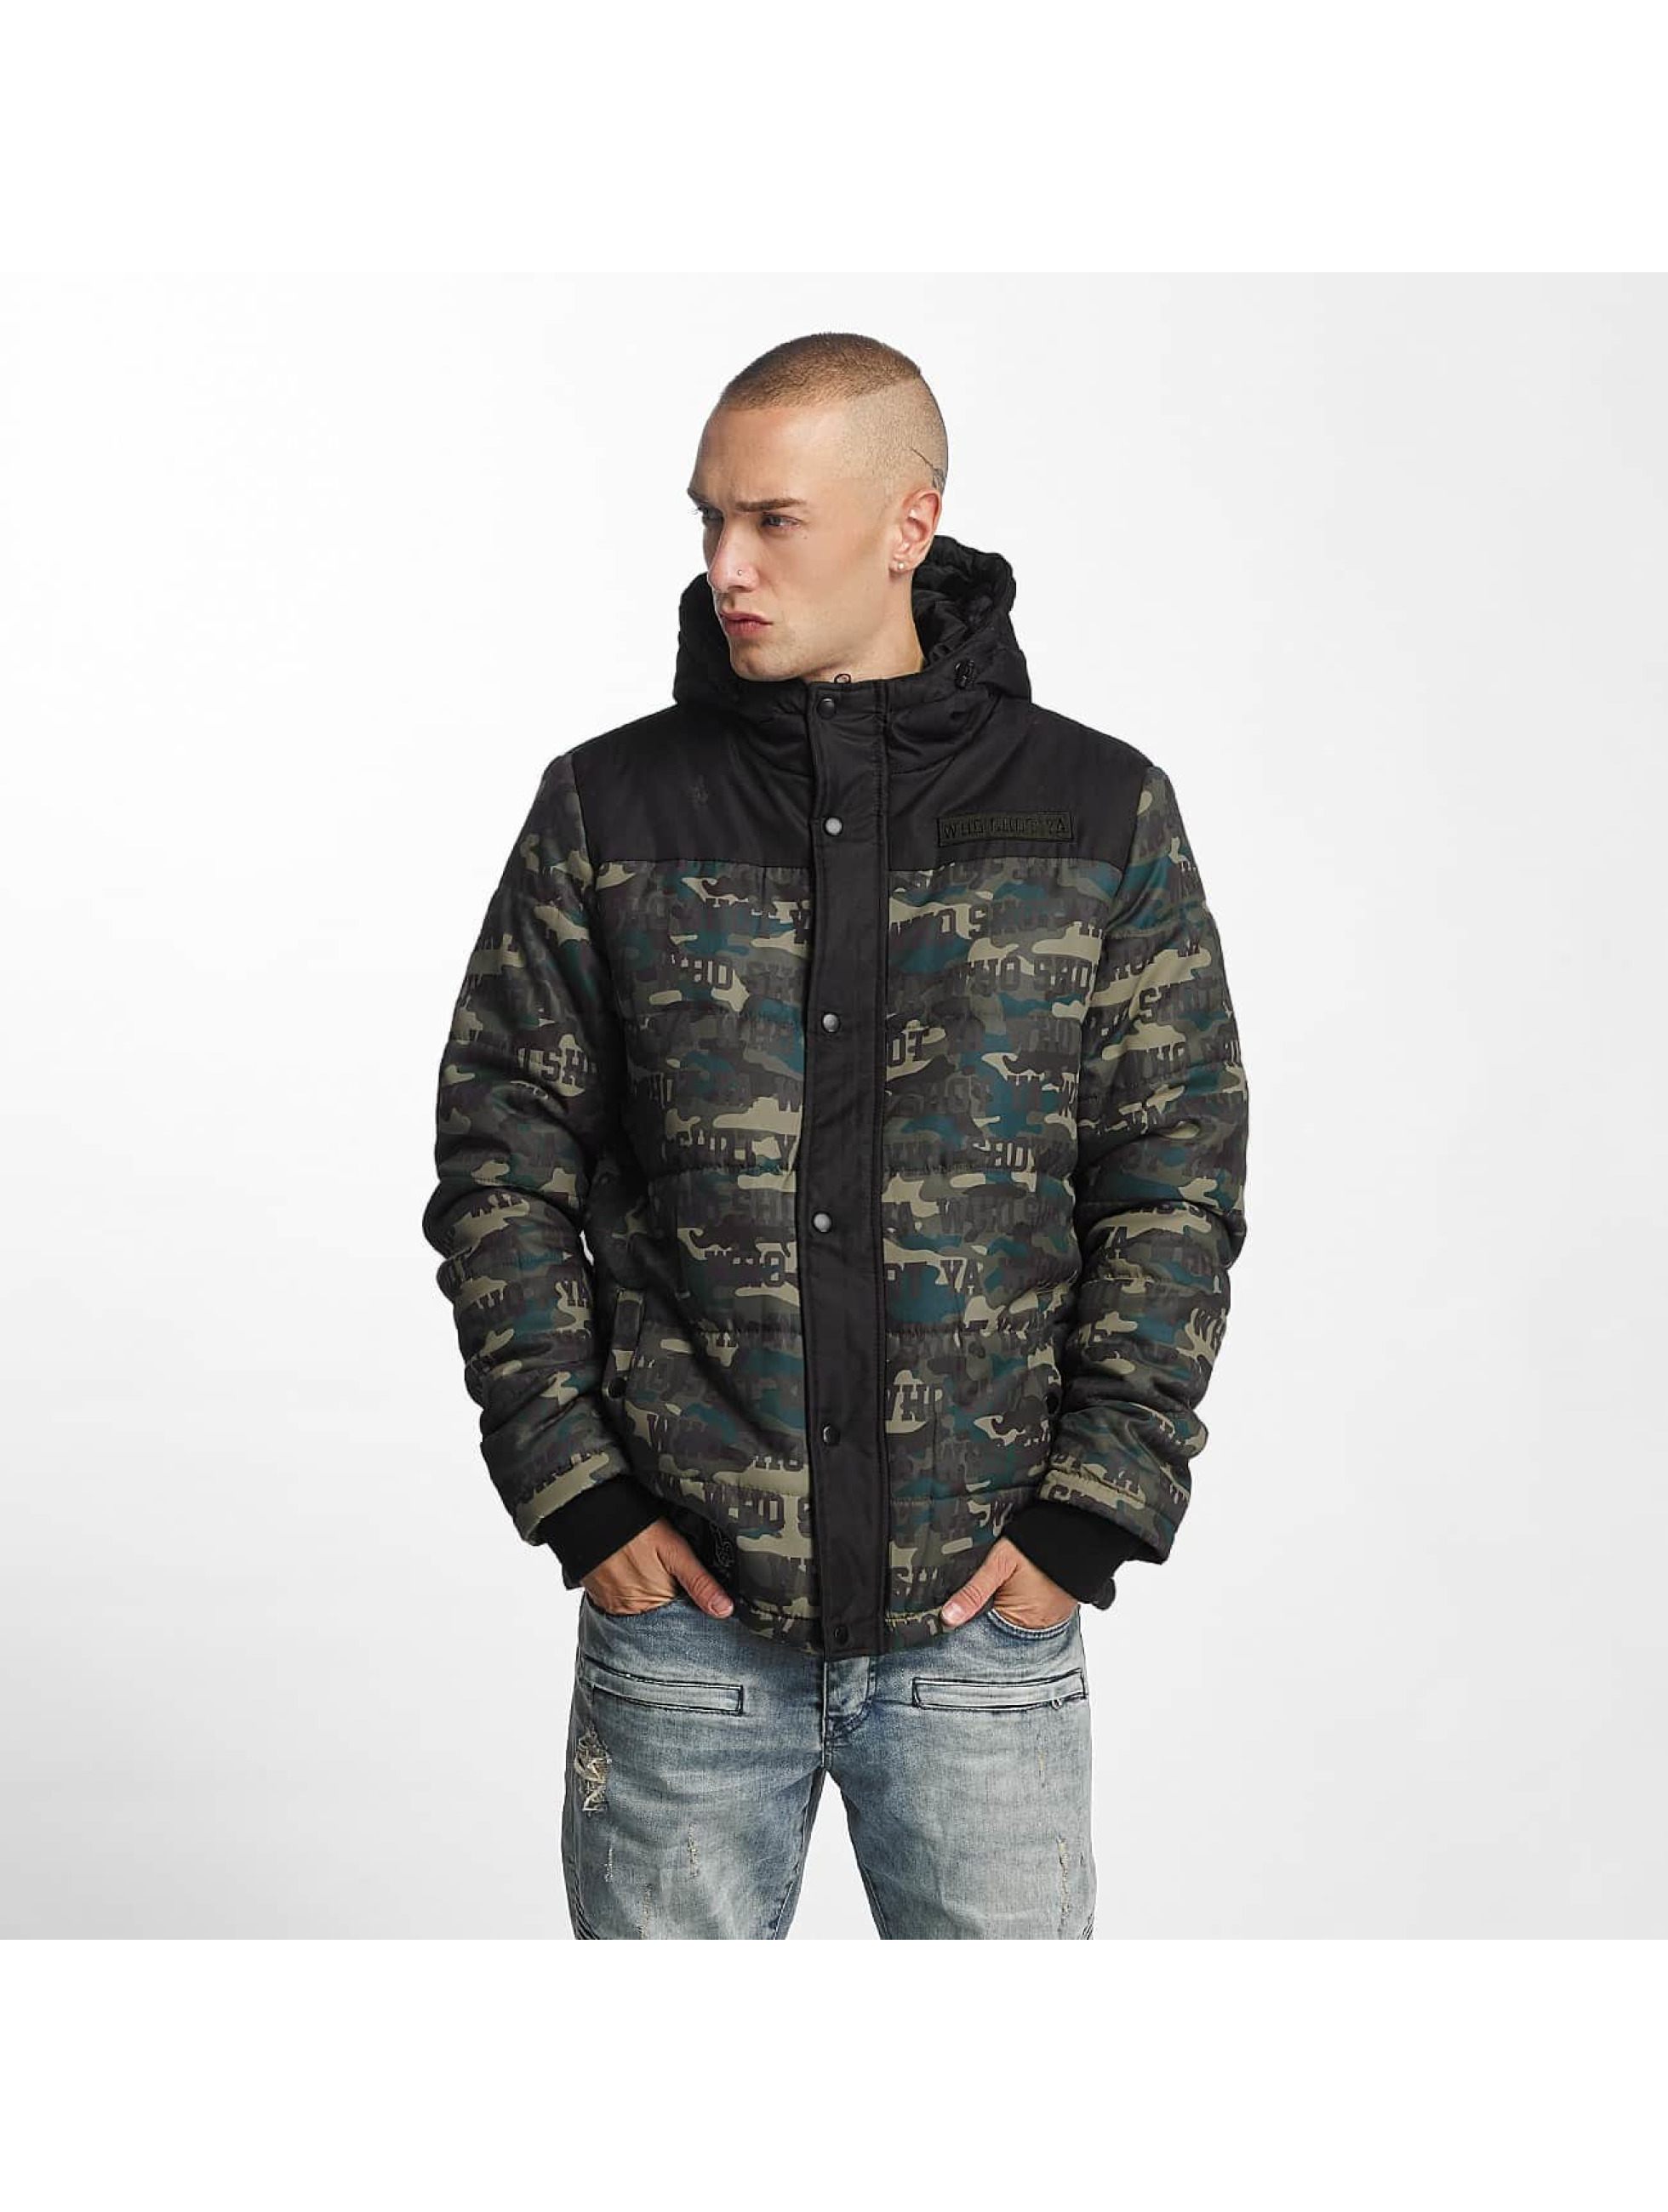 Who Shot Ya? / Winter Jacket Uniondale in camouflage 2XL